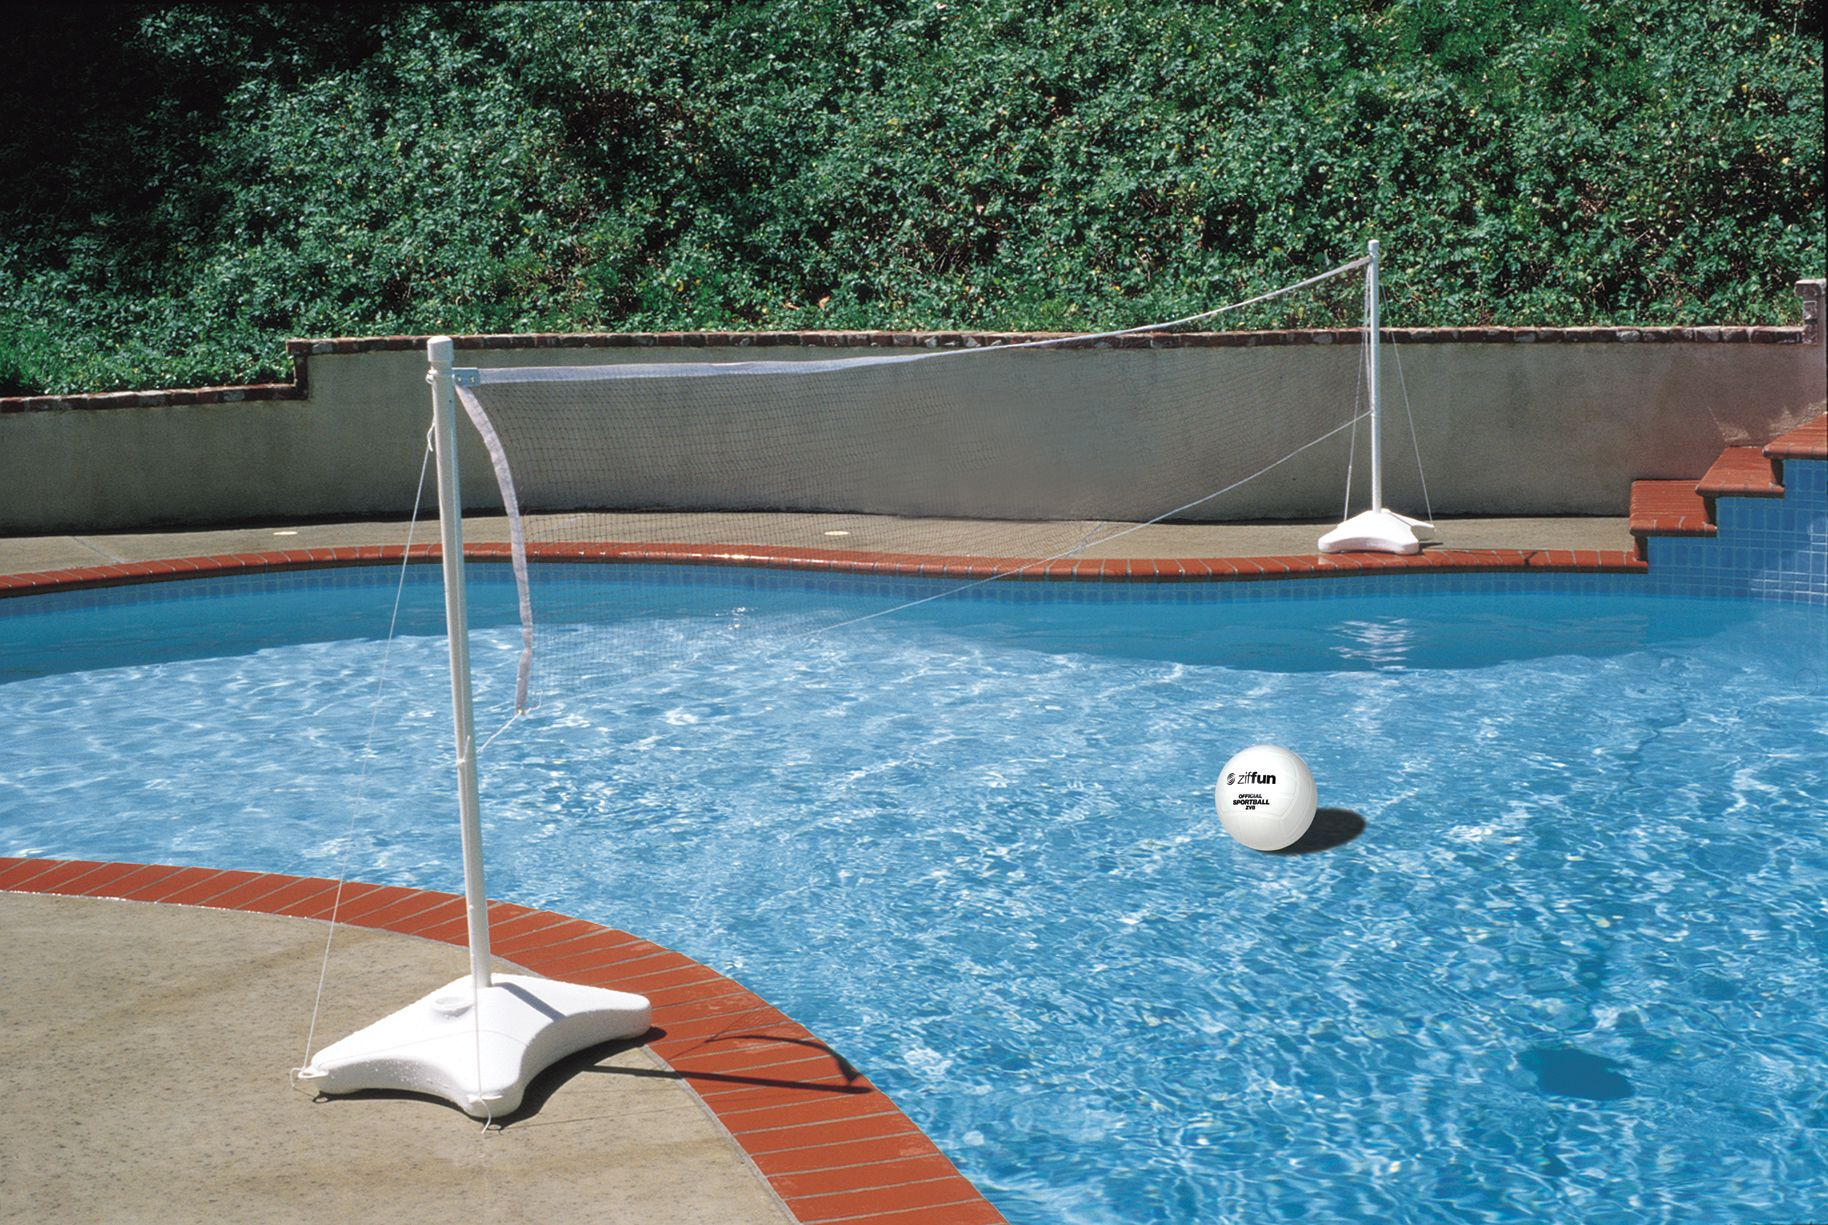 Poolside Volleyball Game Play Anywhere Features Two 48 96 Telescoping Poles 16 25 Net Sports Ball And Two Support Bases Volleyball Set Pool Games Pool